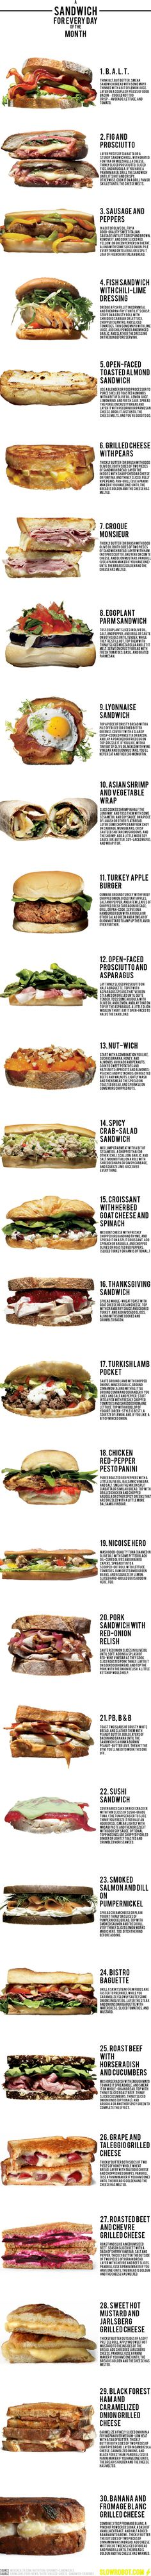 Α sandwich for every day of the month.